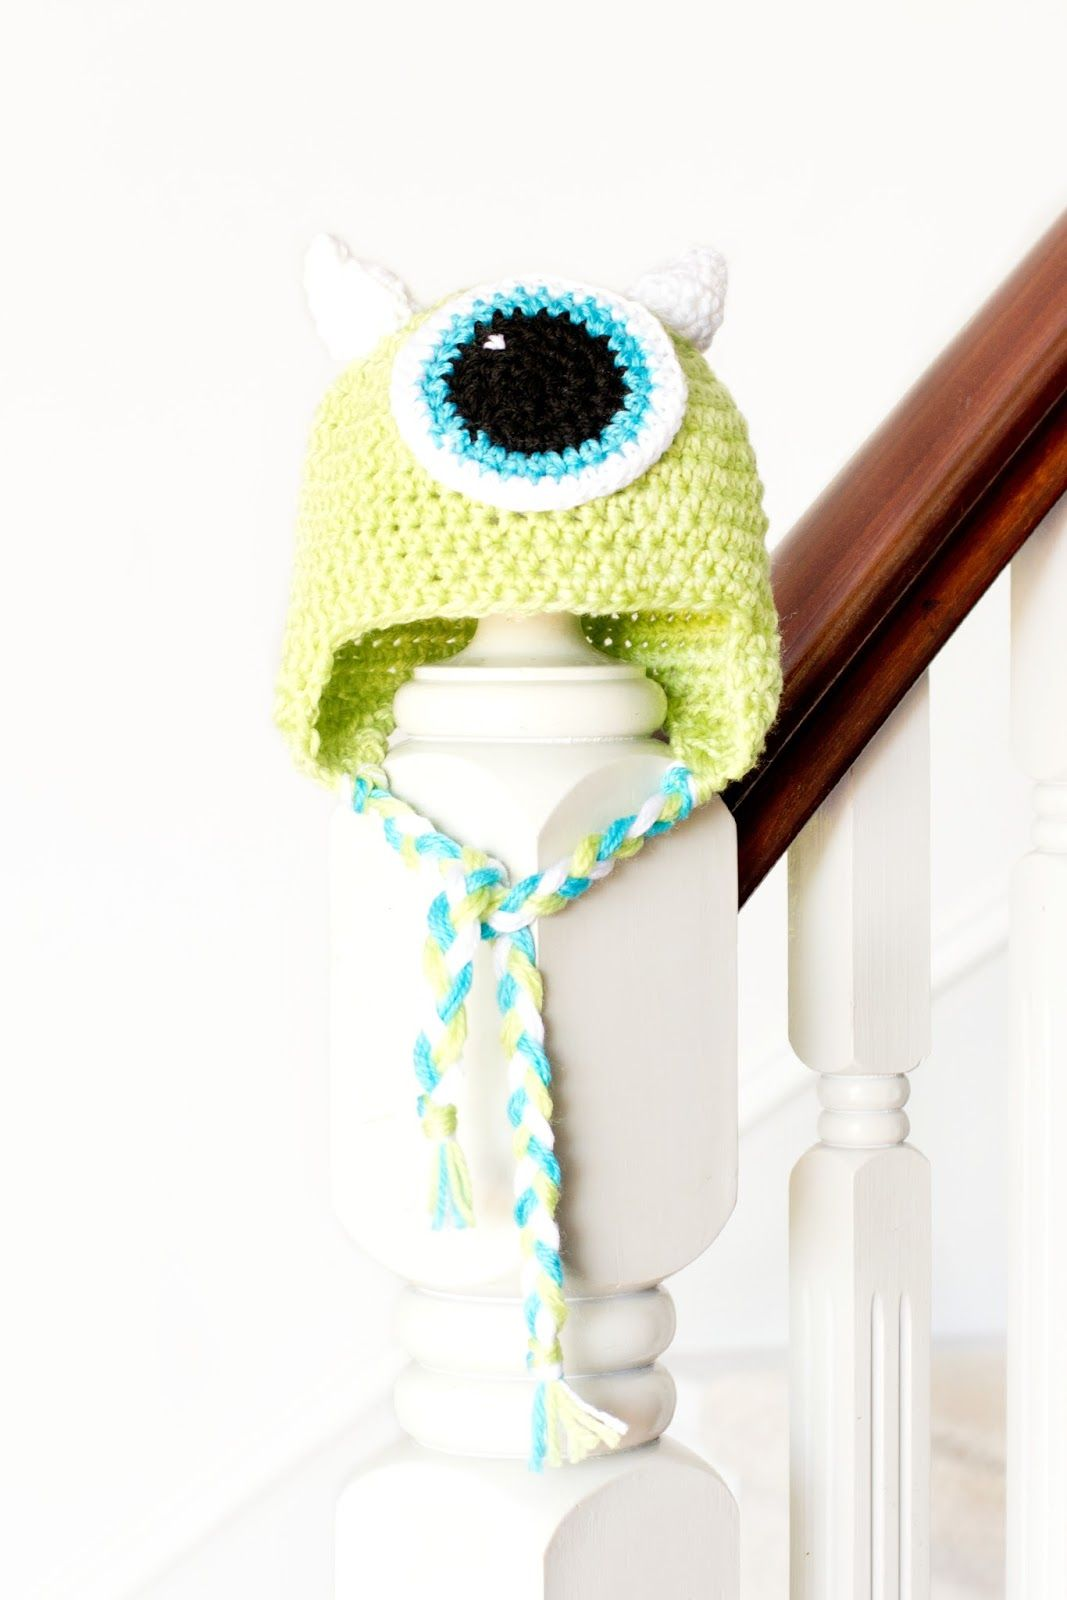 Monsters Inc. Sulley Inspired Baby Hat Crochet Pattern | Hopeful ...